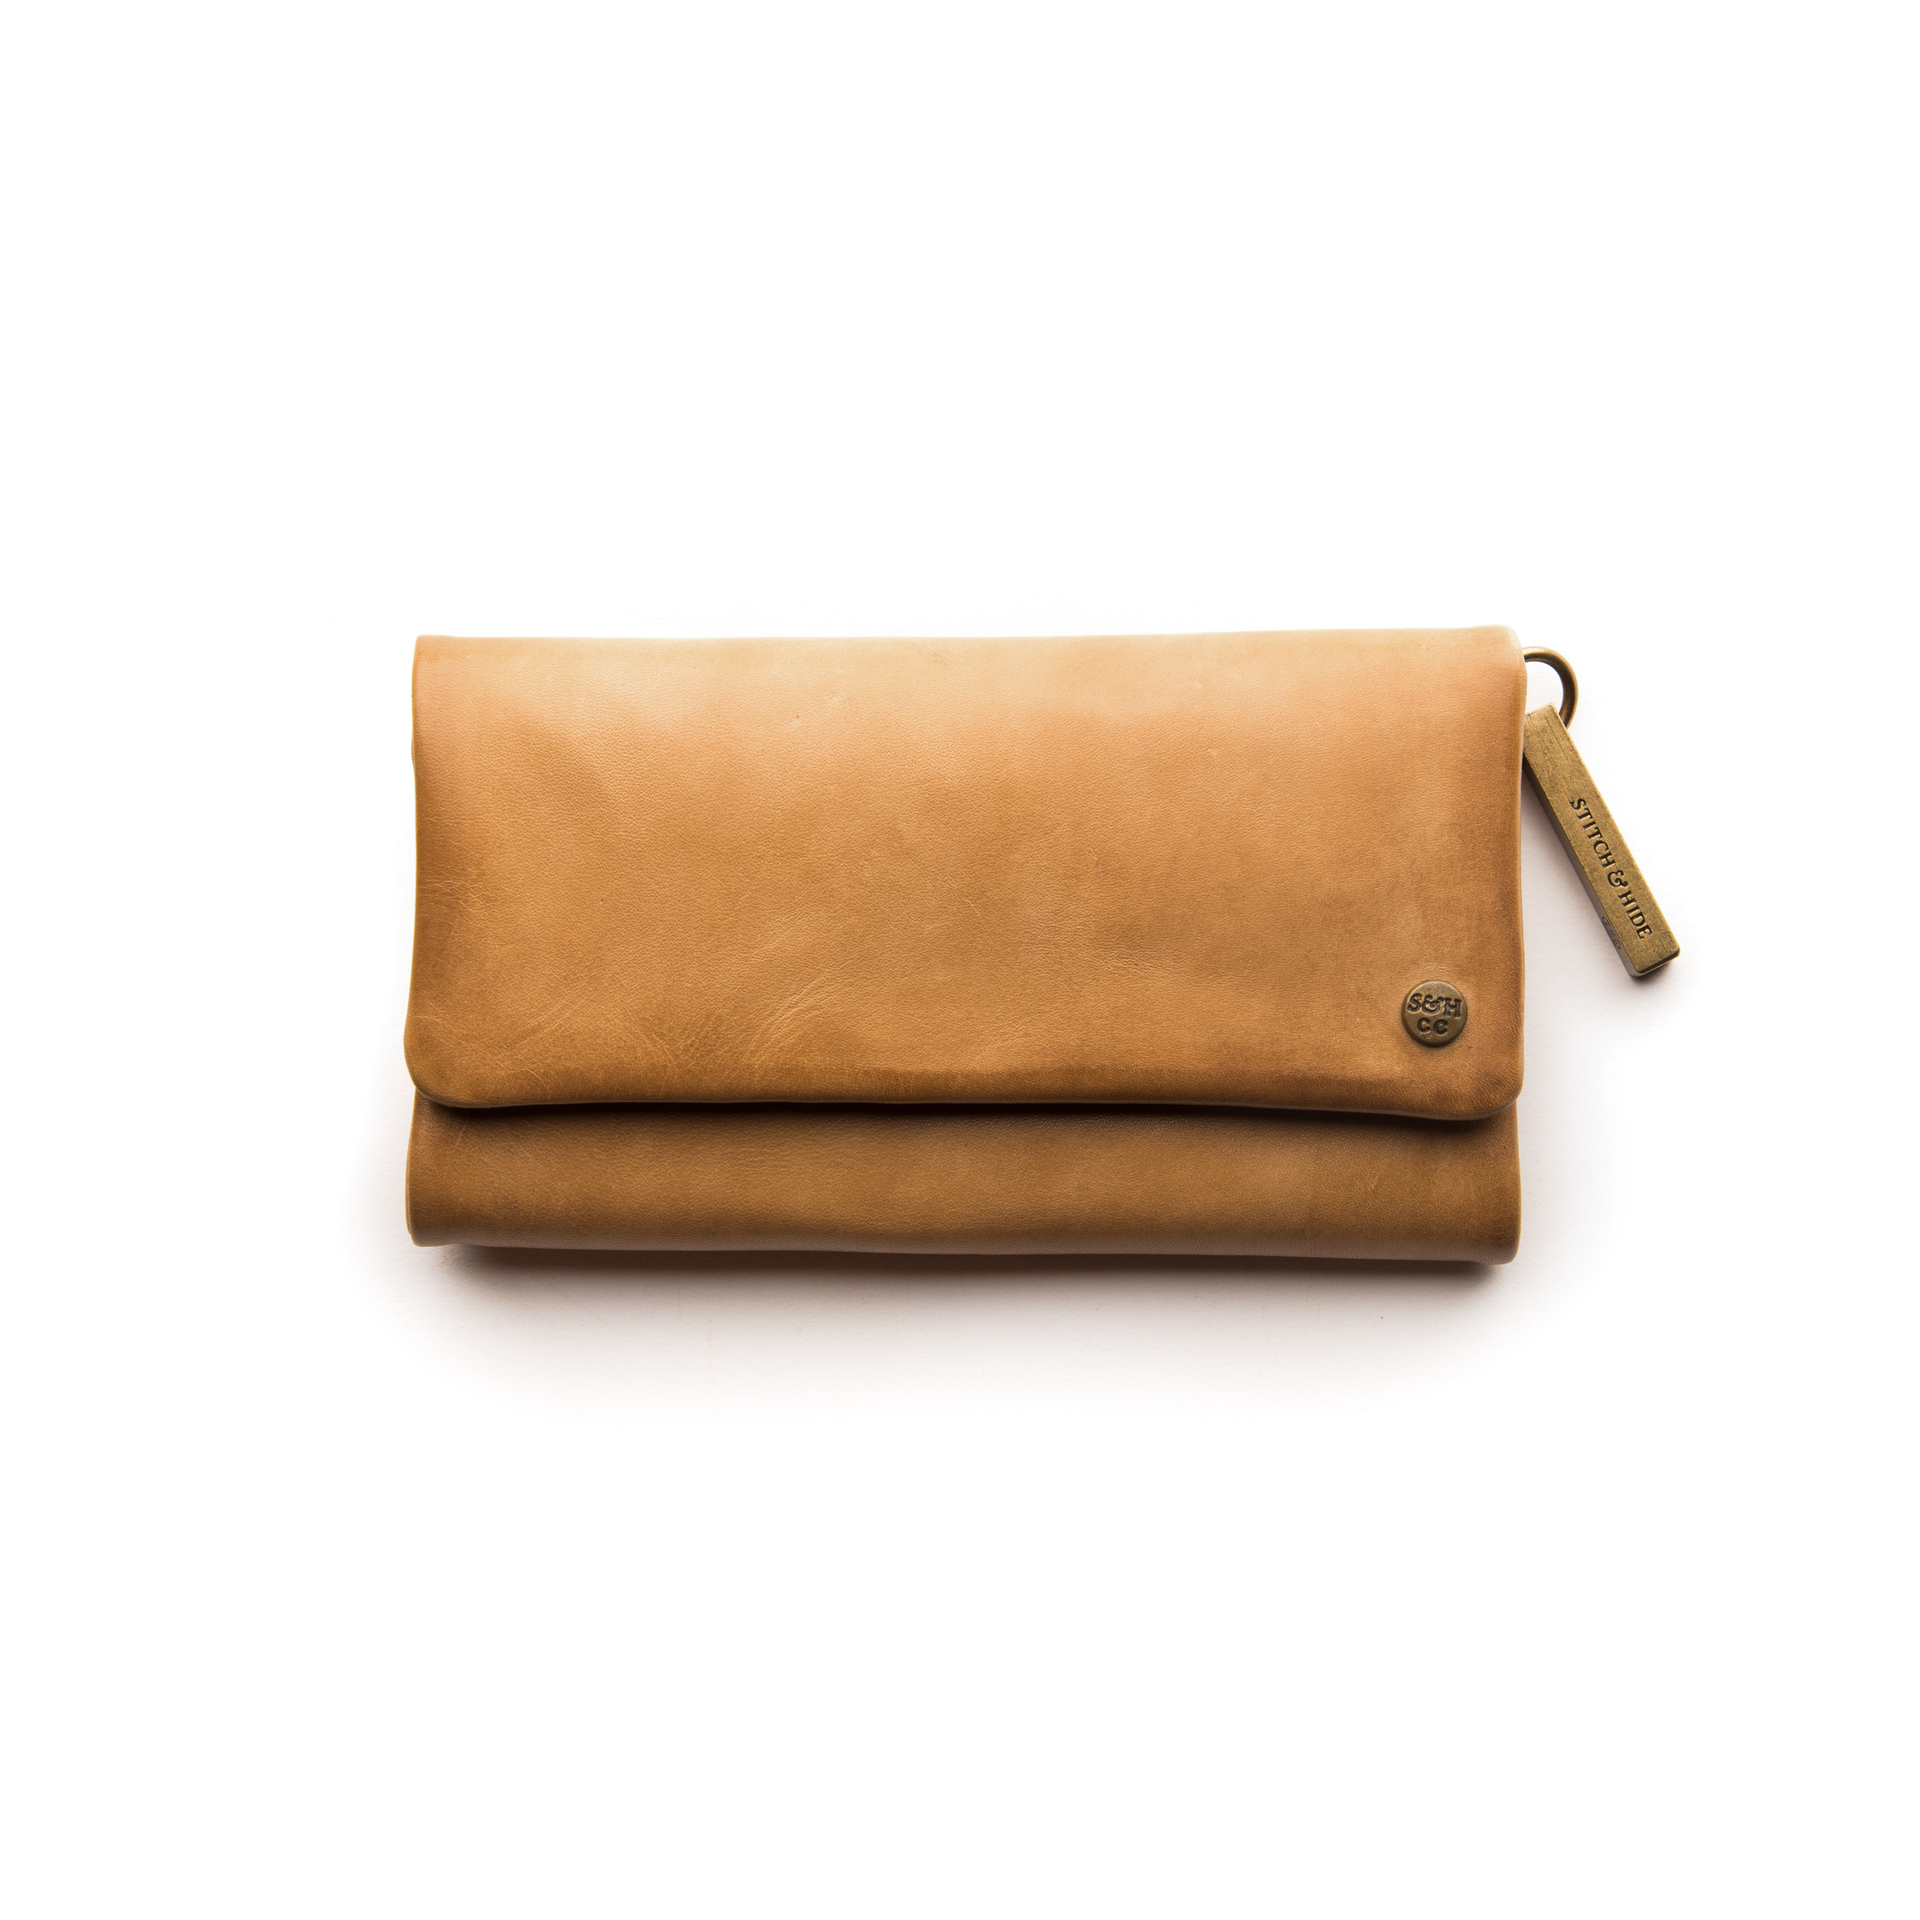 72dpi-21333753be-StitchandHide_PagetClassicWallet_Caramel_Front